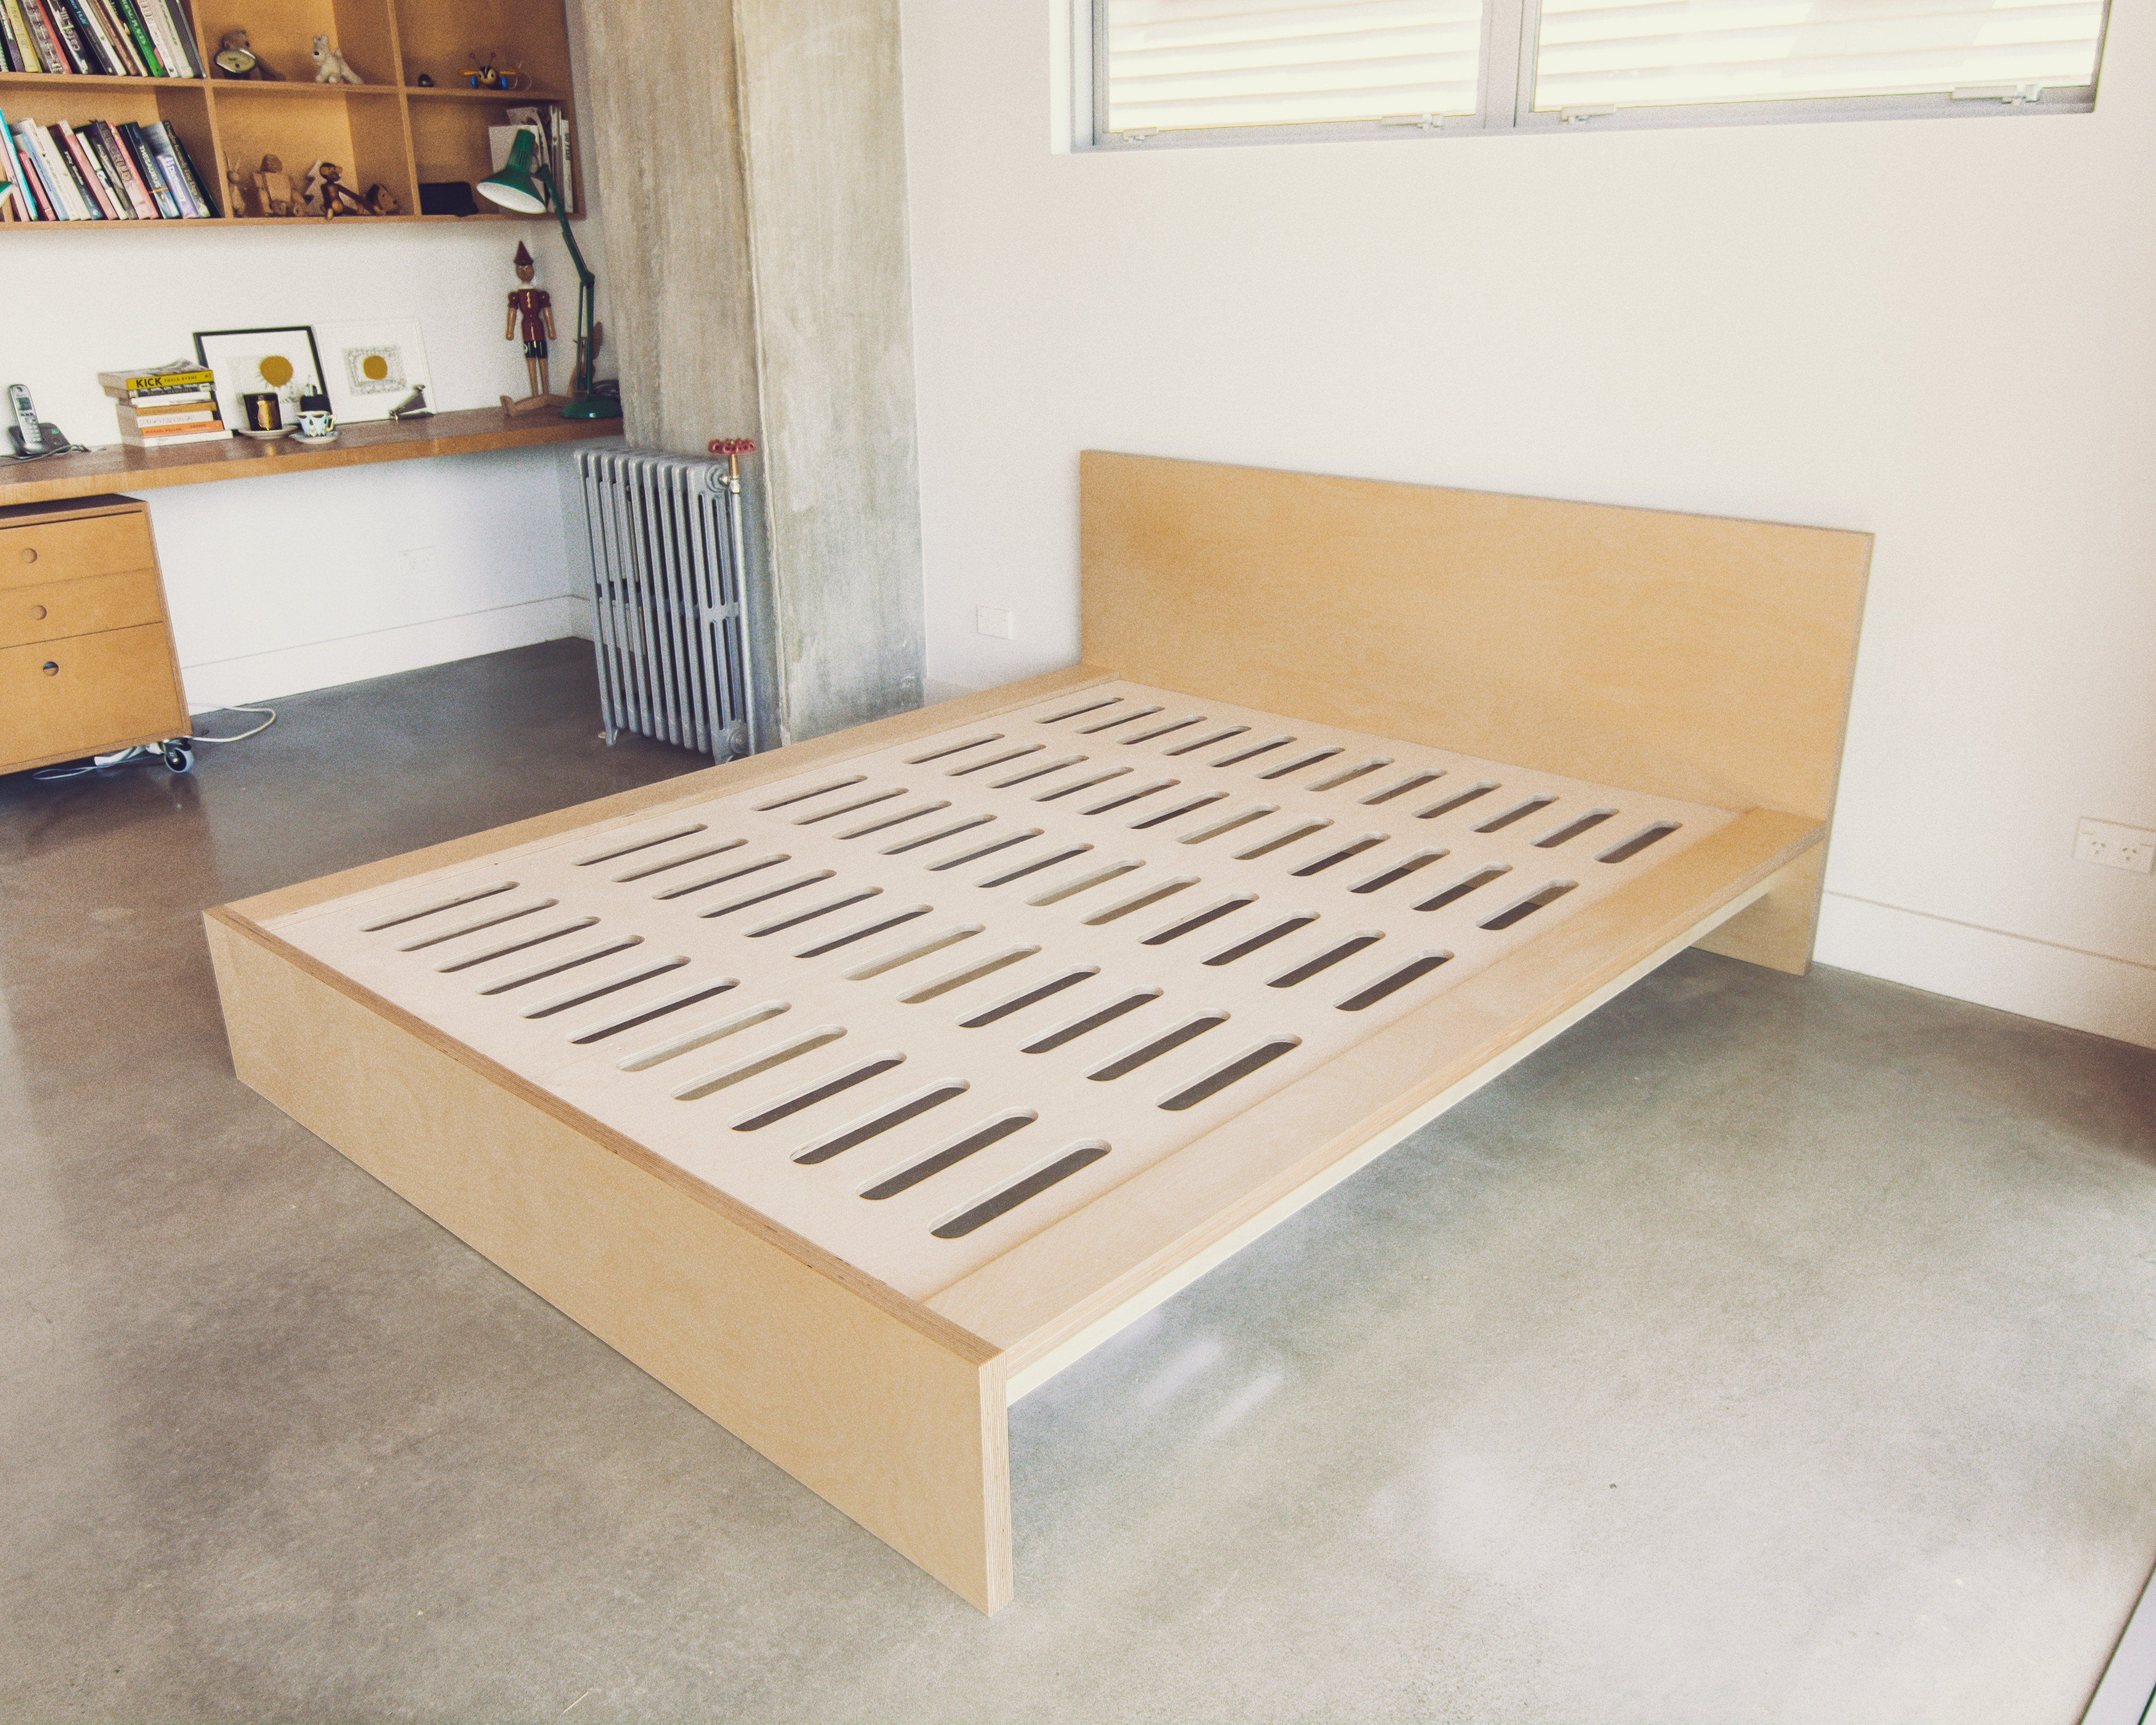 Plywood Bed Plywood Bed Designs How To Make Bed Furniture